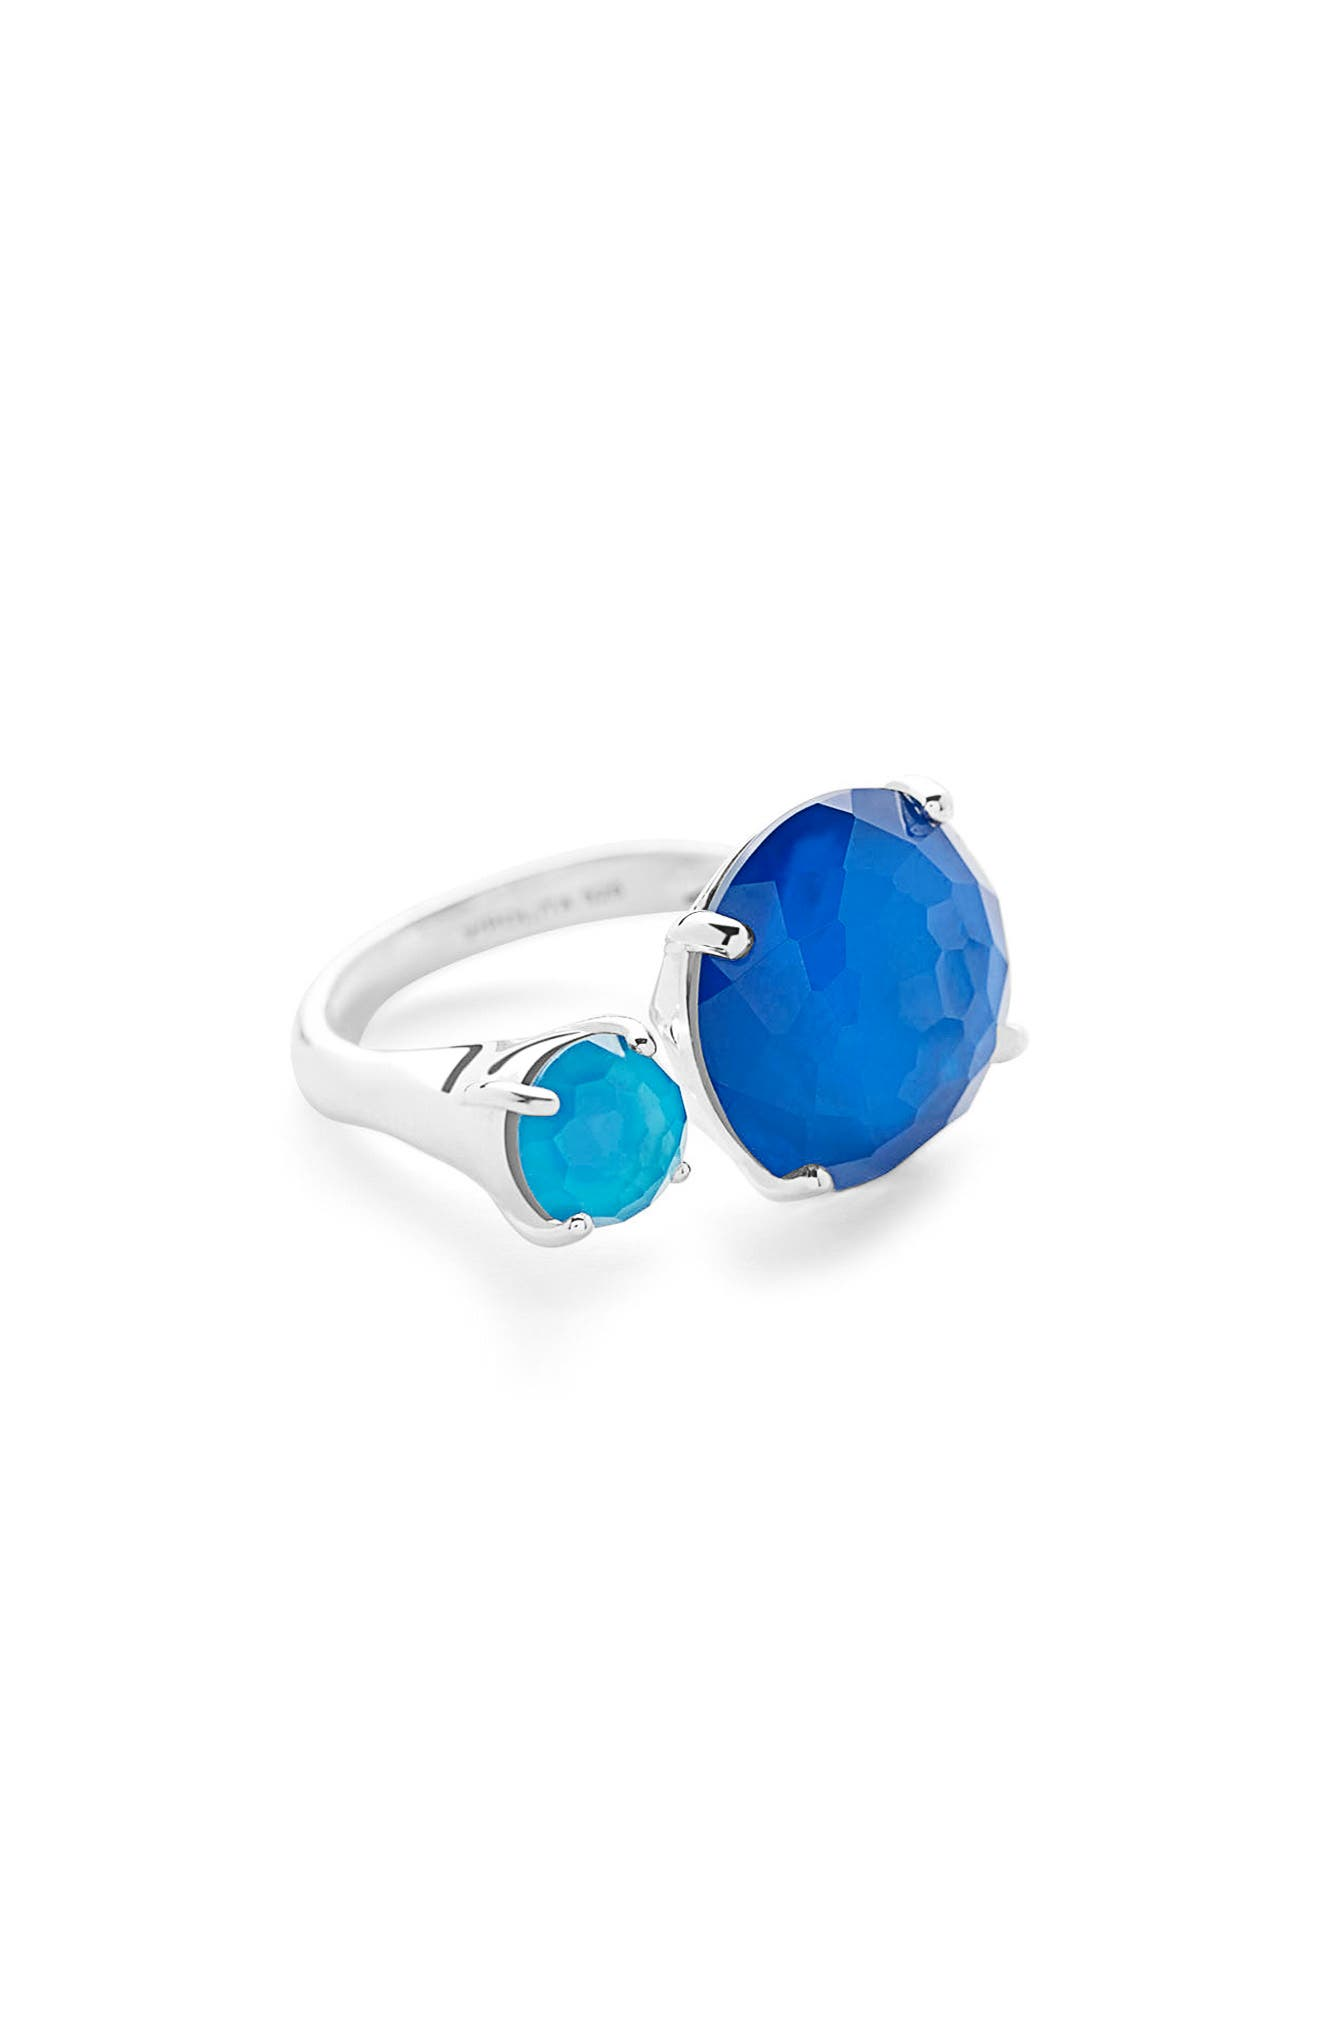 Wonderland Stone Ring,                         Main,                         color,